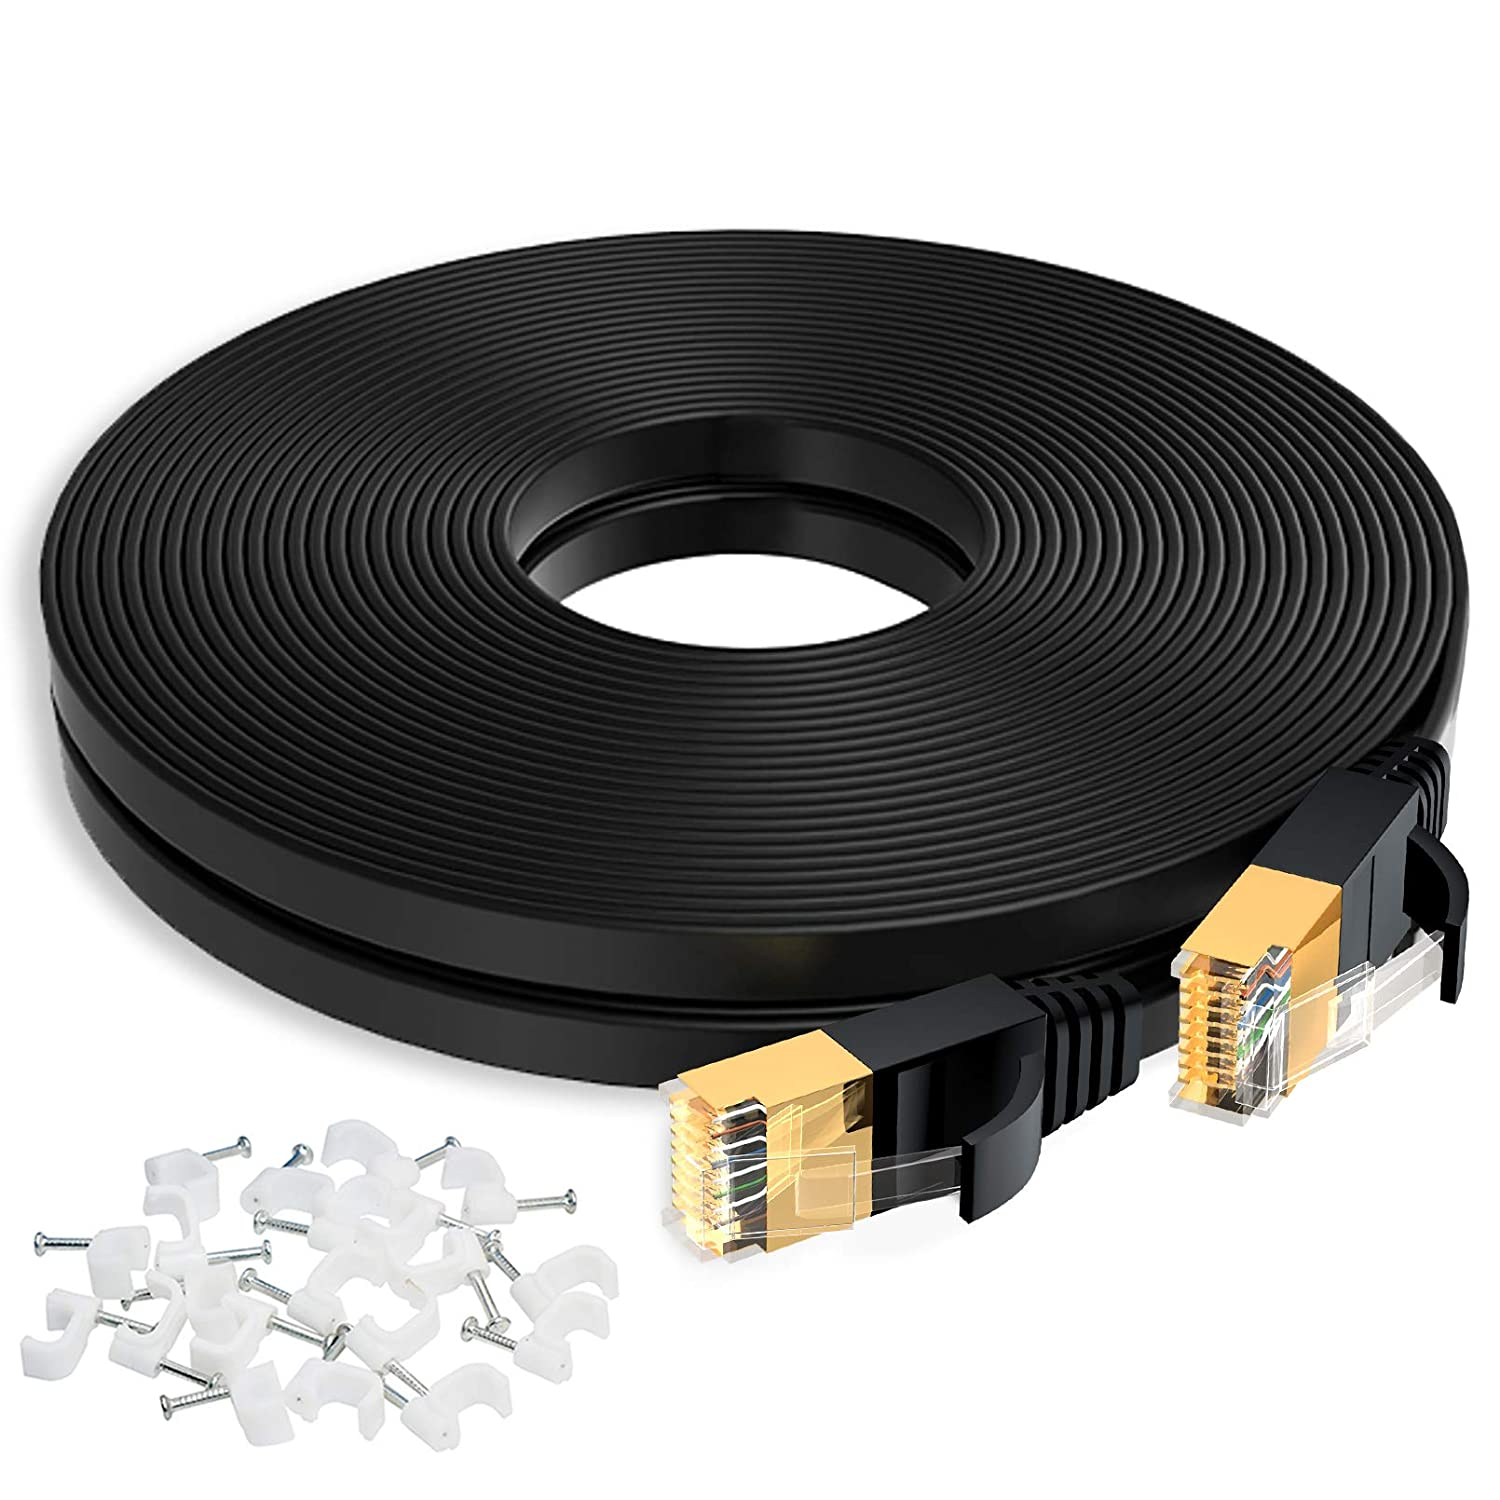 Cat 7 Ethernet Cable, 50 Ft High Speed Internet Patch Cord with Shielded Gold Plated RJ45 Connectors, Flat LAN Wire Faster Than Cat6, Outdoor Weatherproof for PS5, Router, Switch, Modem, Black: Computers & Accessories